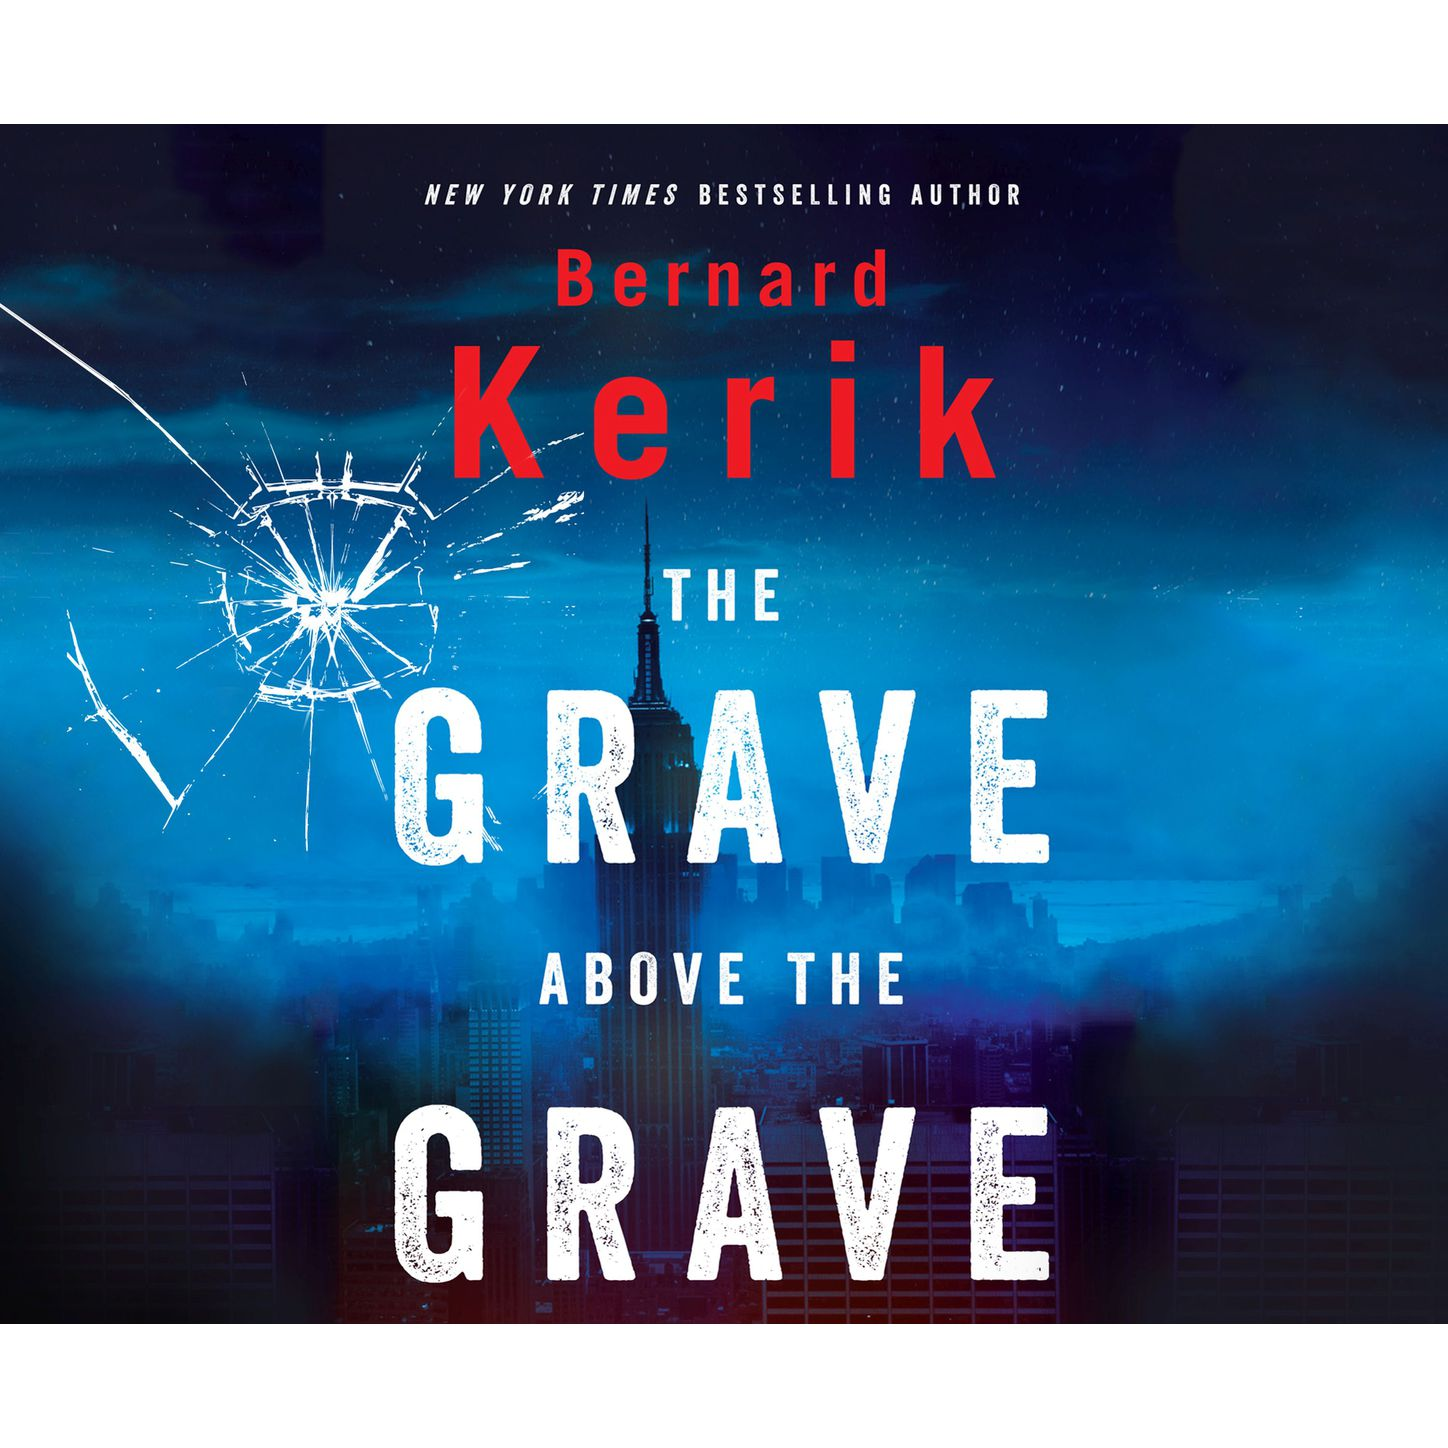 Bernard Kerik The Grave Above the Grave (Unabridged) hannah bernard the dating resolution